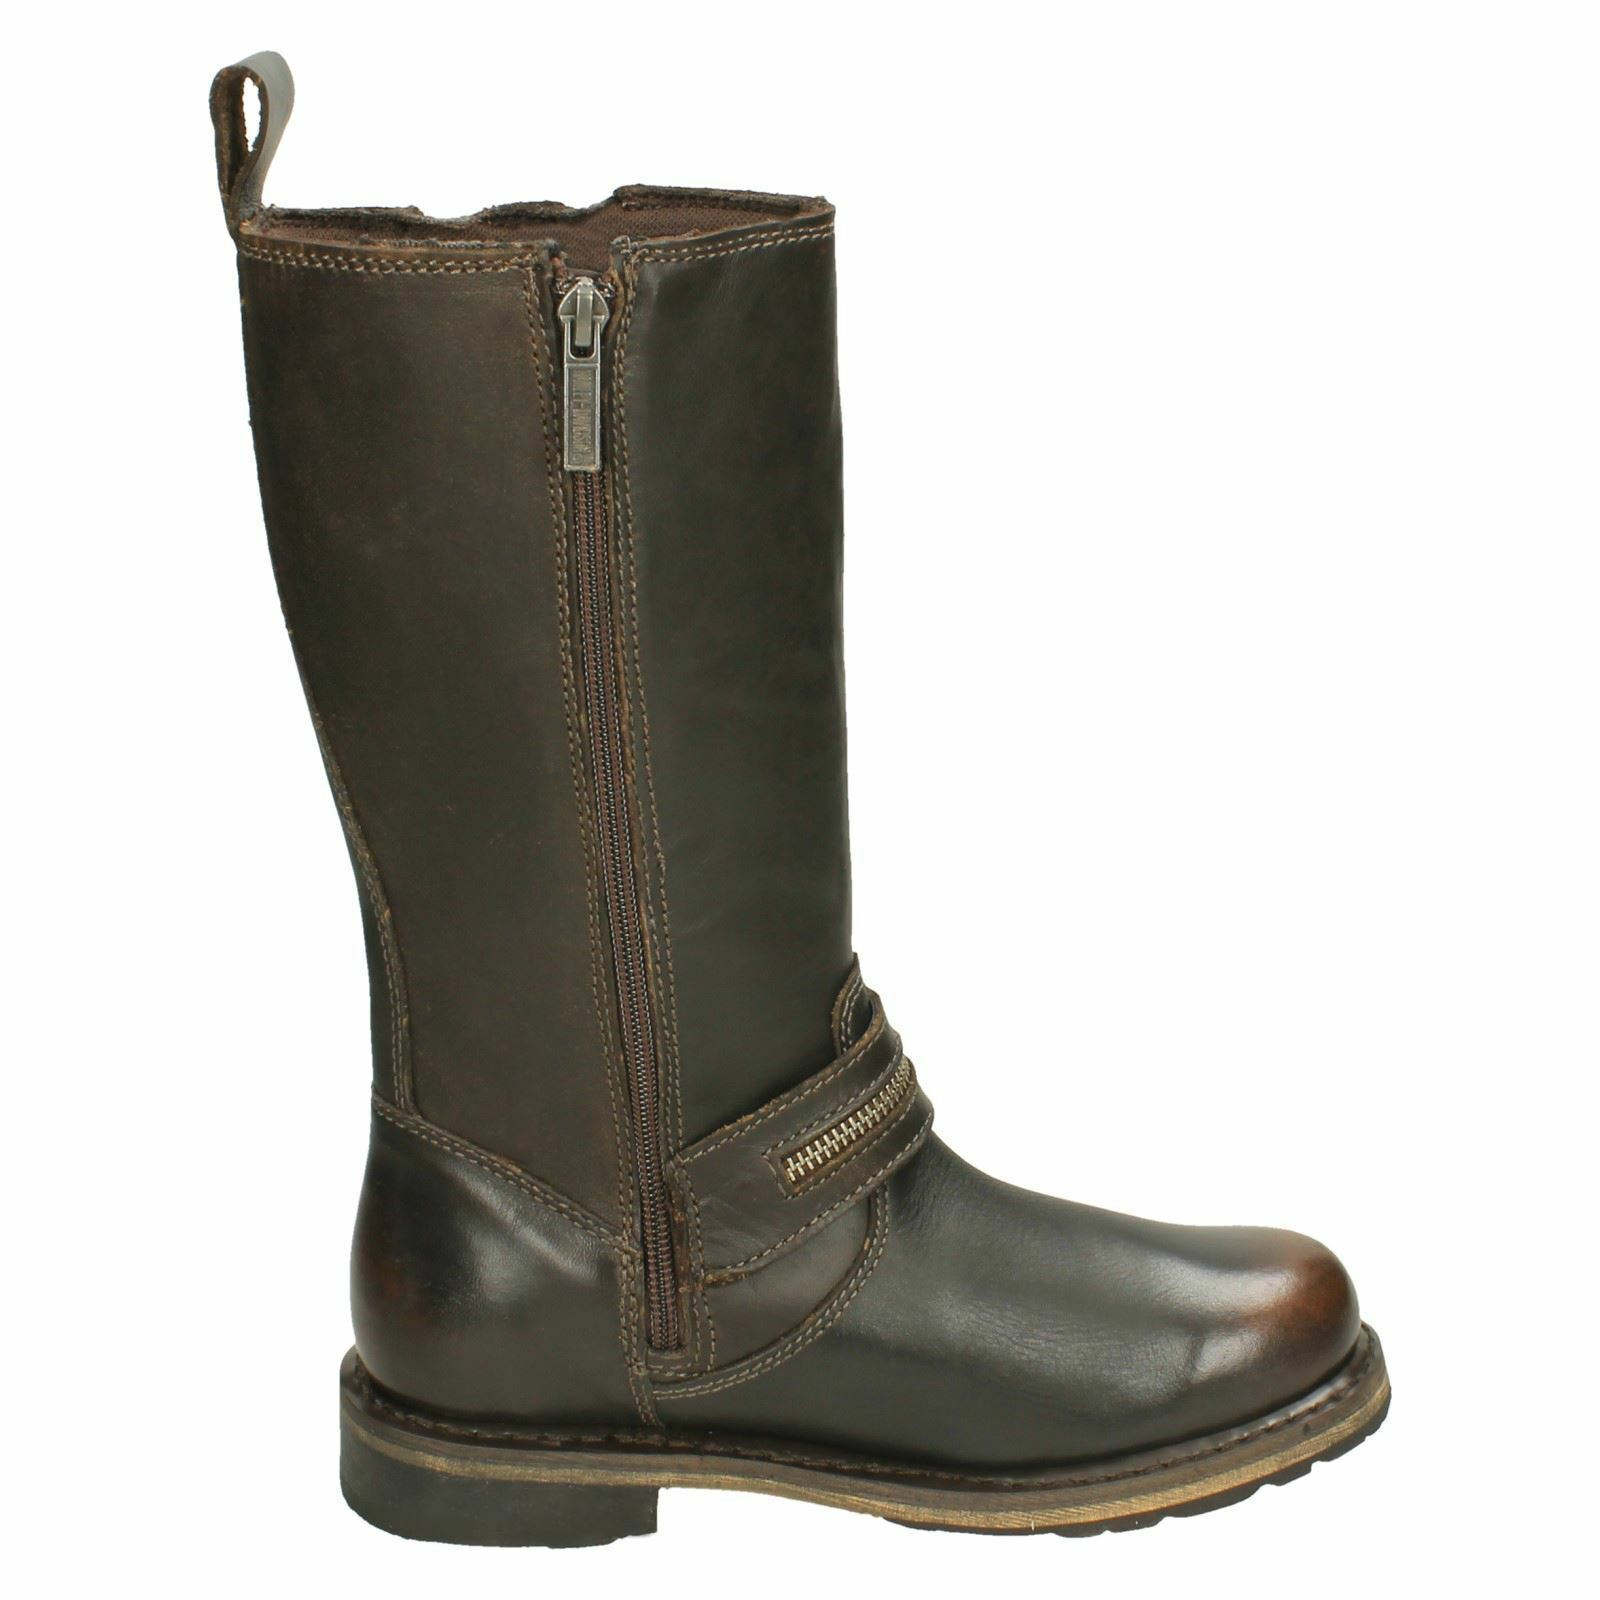 SACKETT ZIP HARLEY DAVIDSON LADIES LEATHER MID CALF LENGTH ZIP SACKETT UP BIKER Stiefel SIZES 2f338e